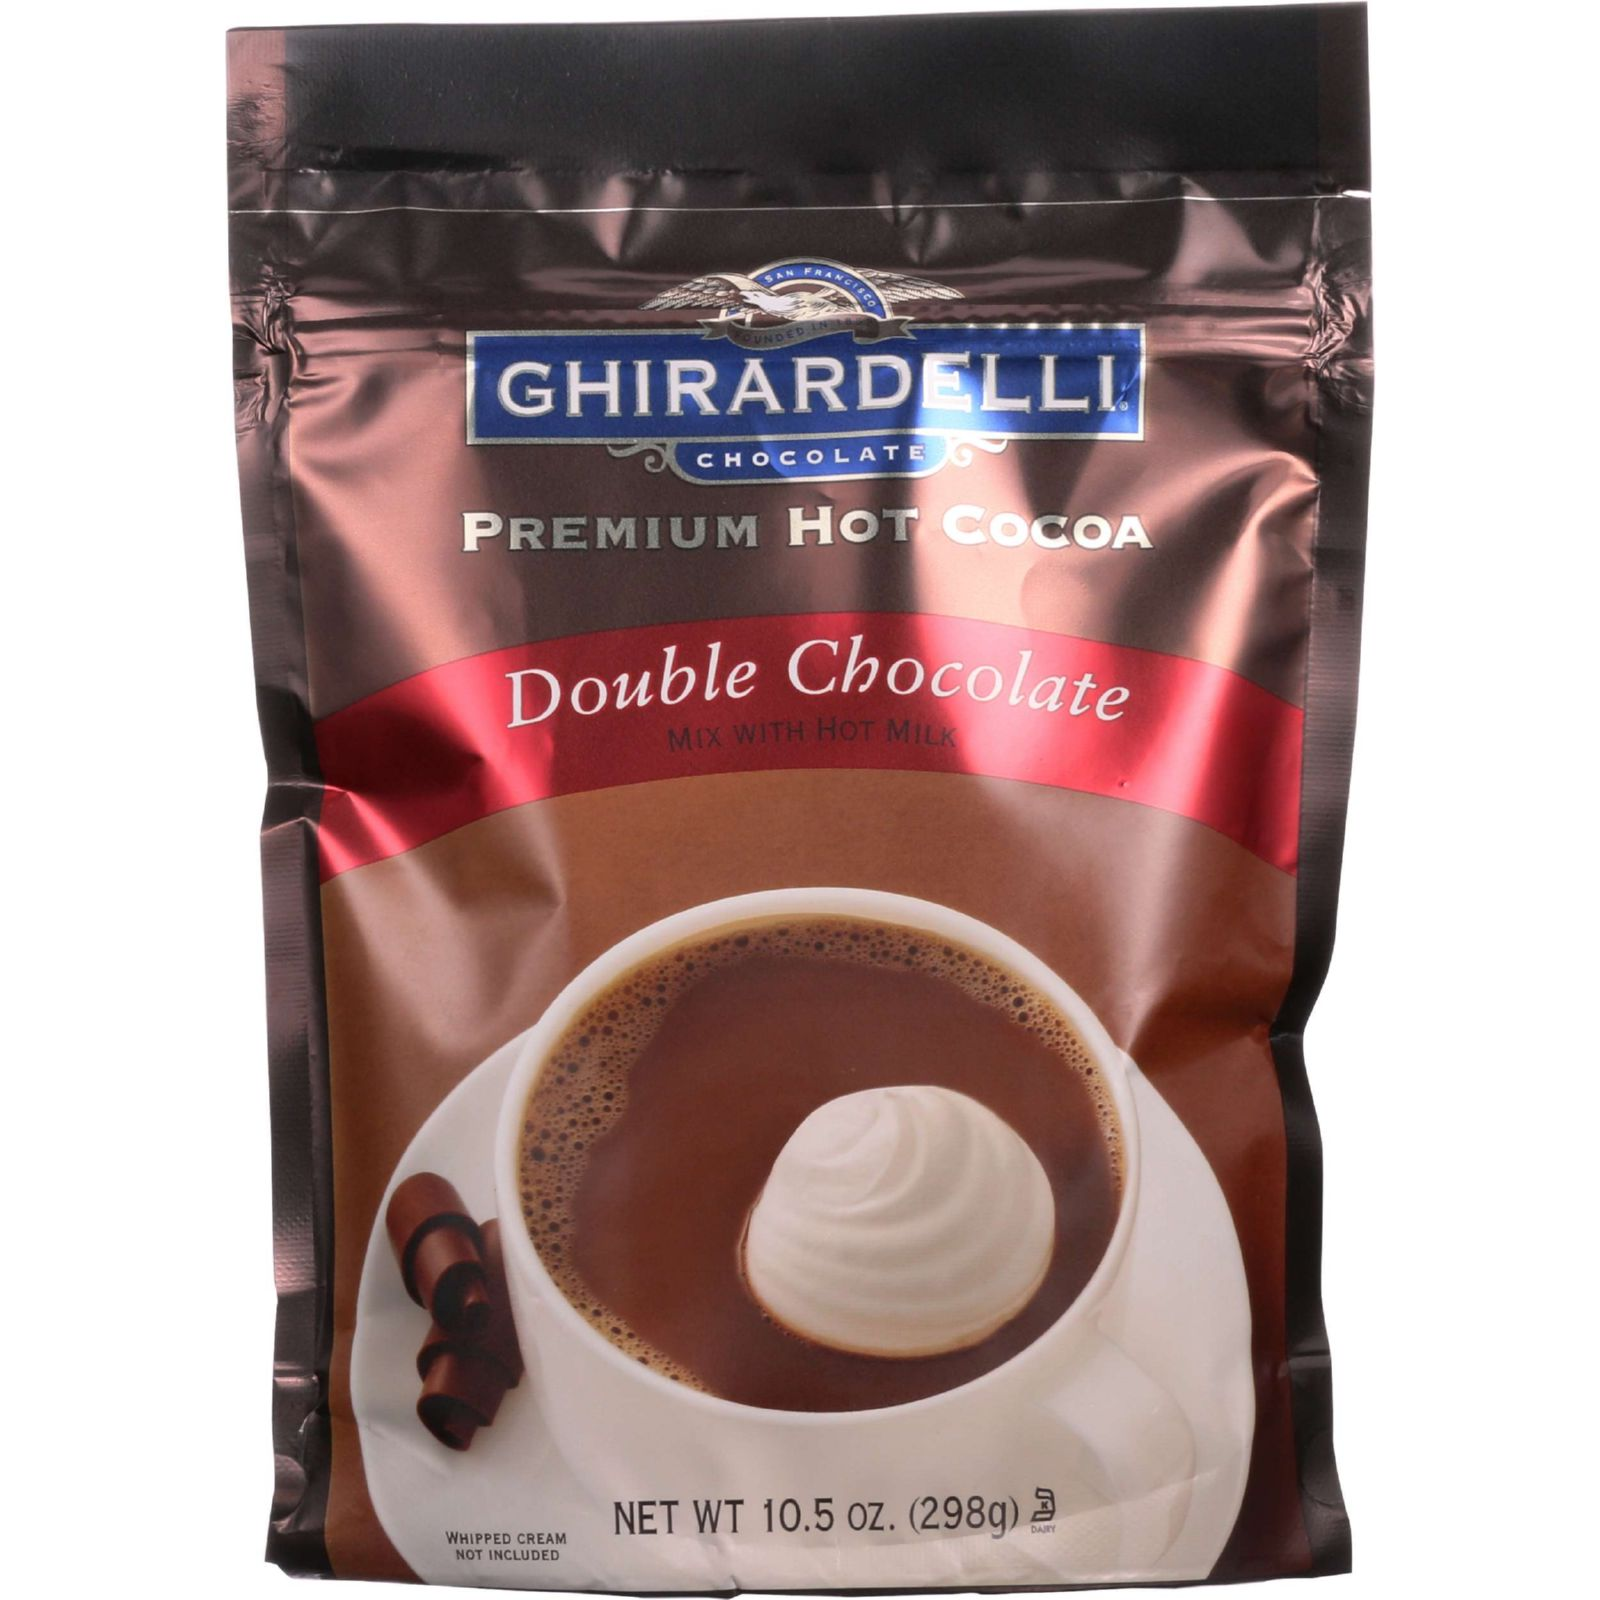 Ghirardelli Chocolate Premium Hot Cocoa Double Chocolate, 10.5 OZ